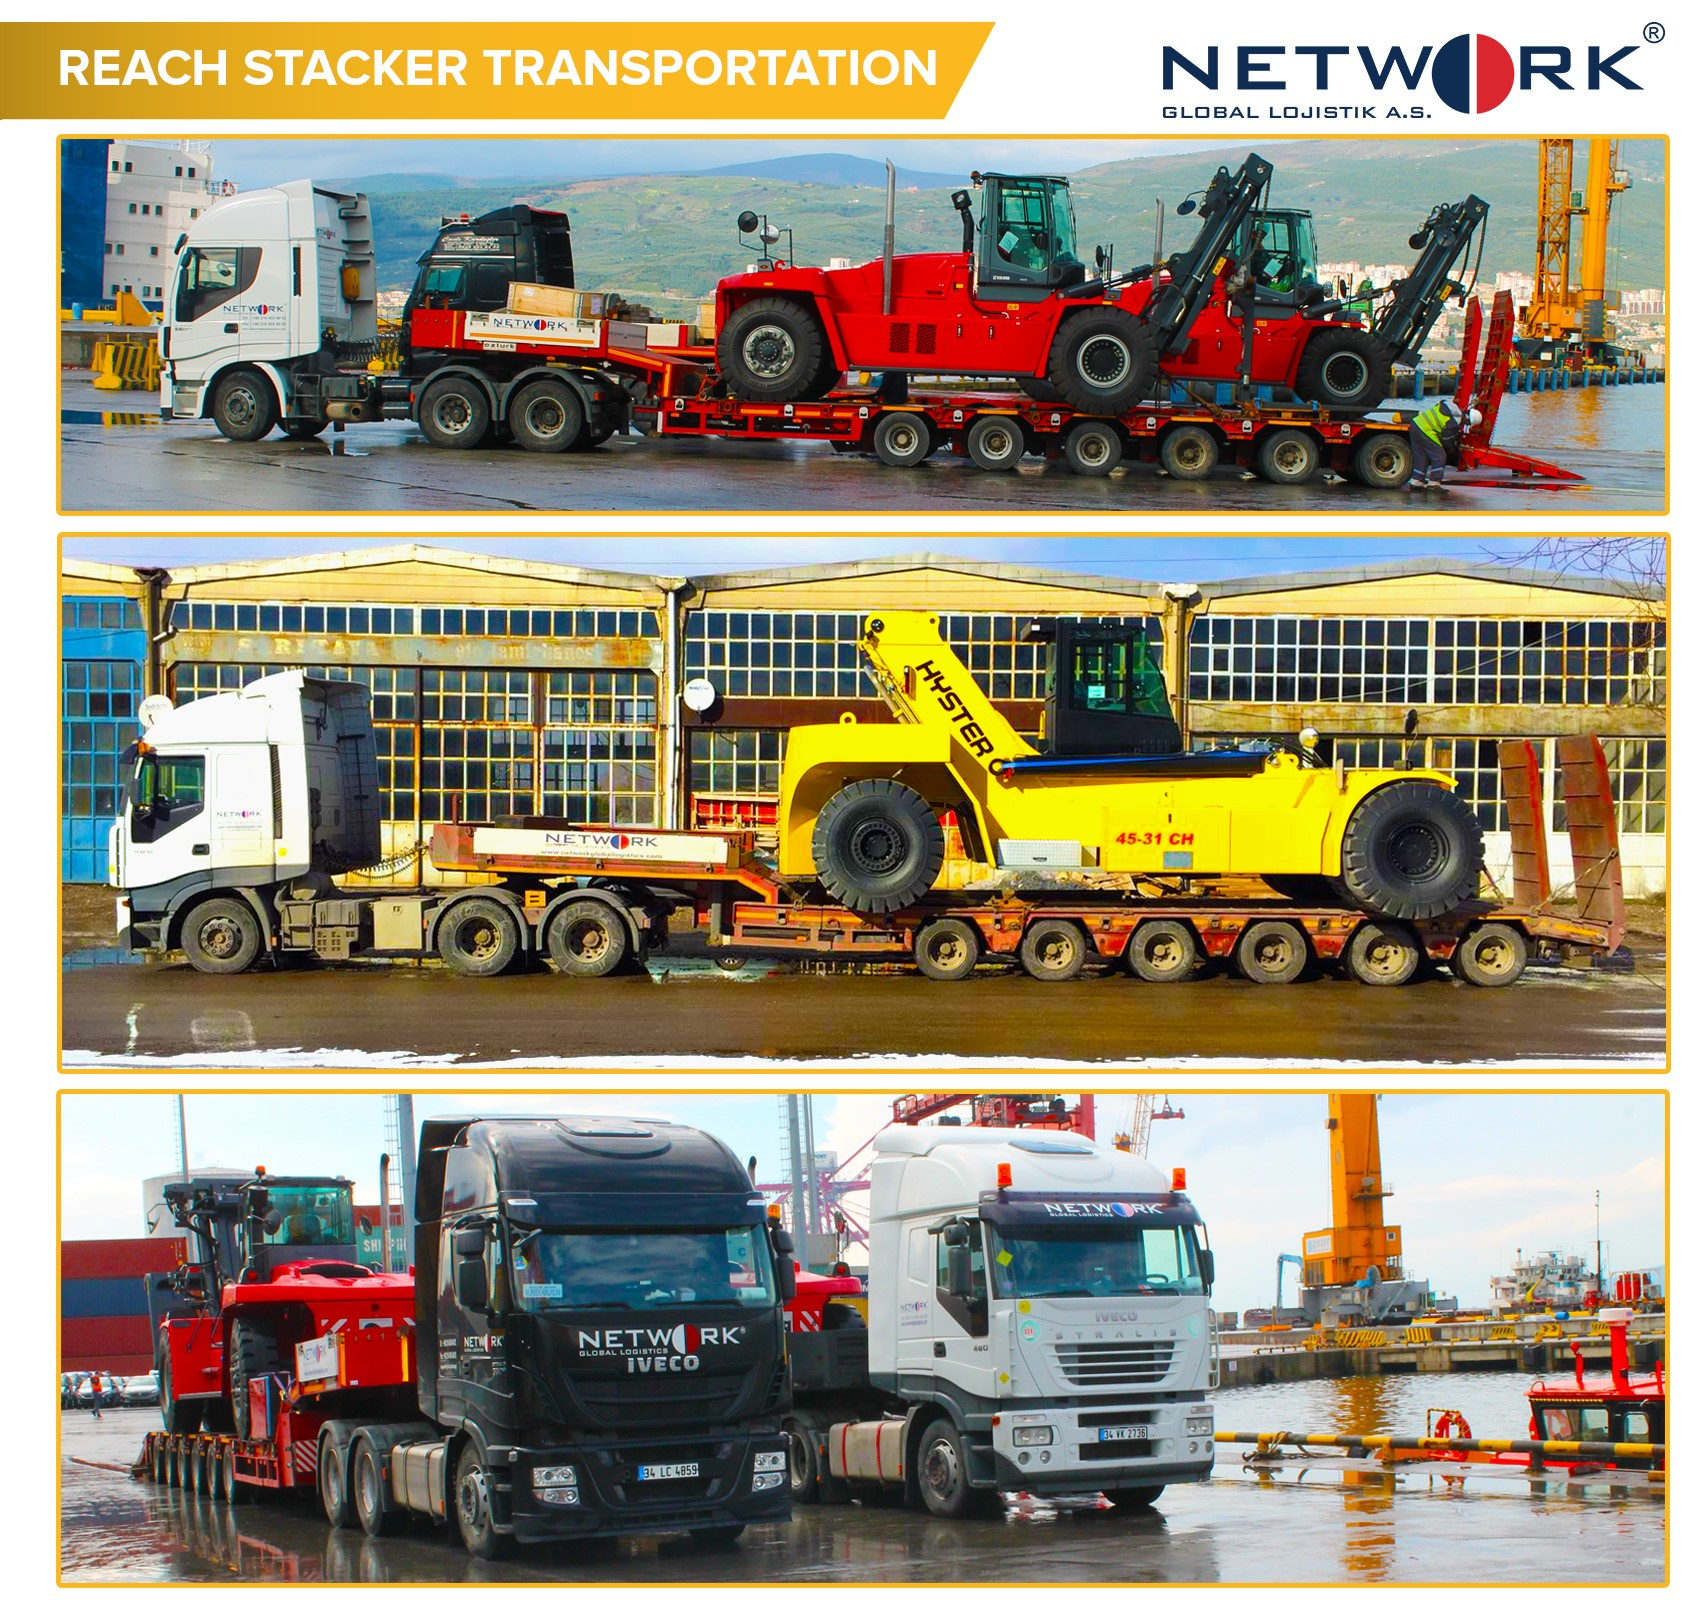 Reach Stacker Transportation